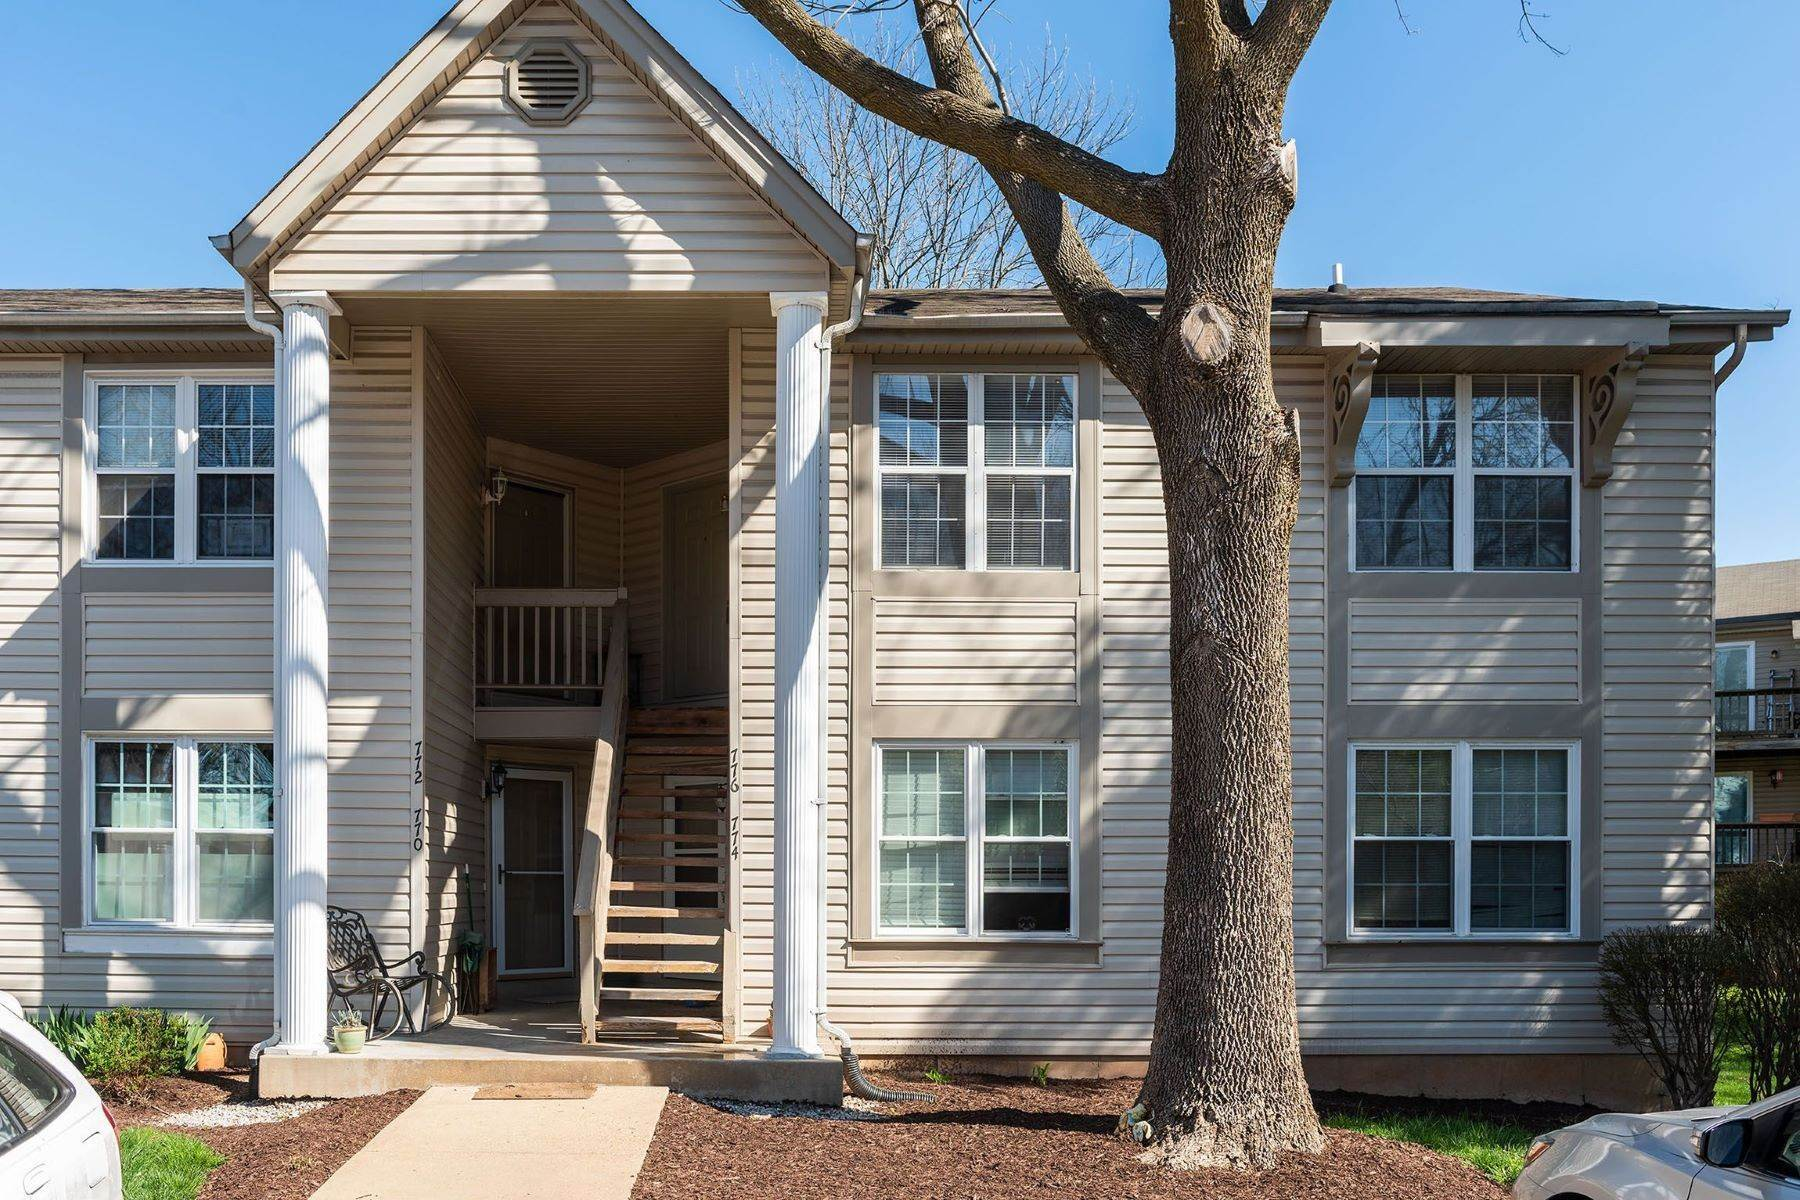 Condominiums for Sale at Beautifully Updated St. Peters Condo 776 Sugar Glen Drive #8 St. Peters, Missouri 63376 United States